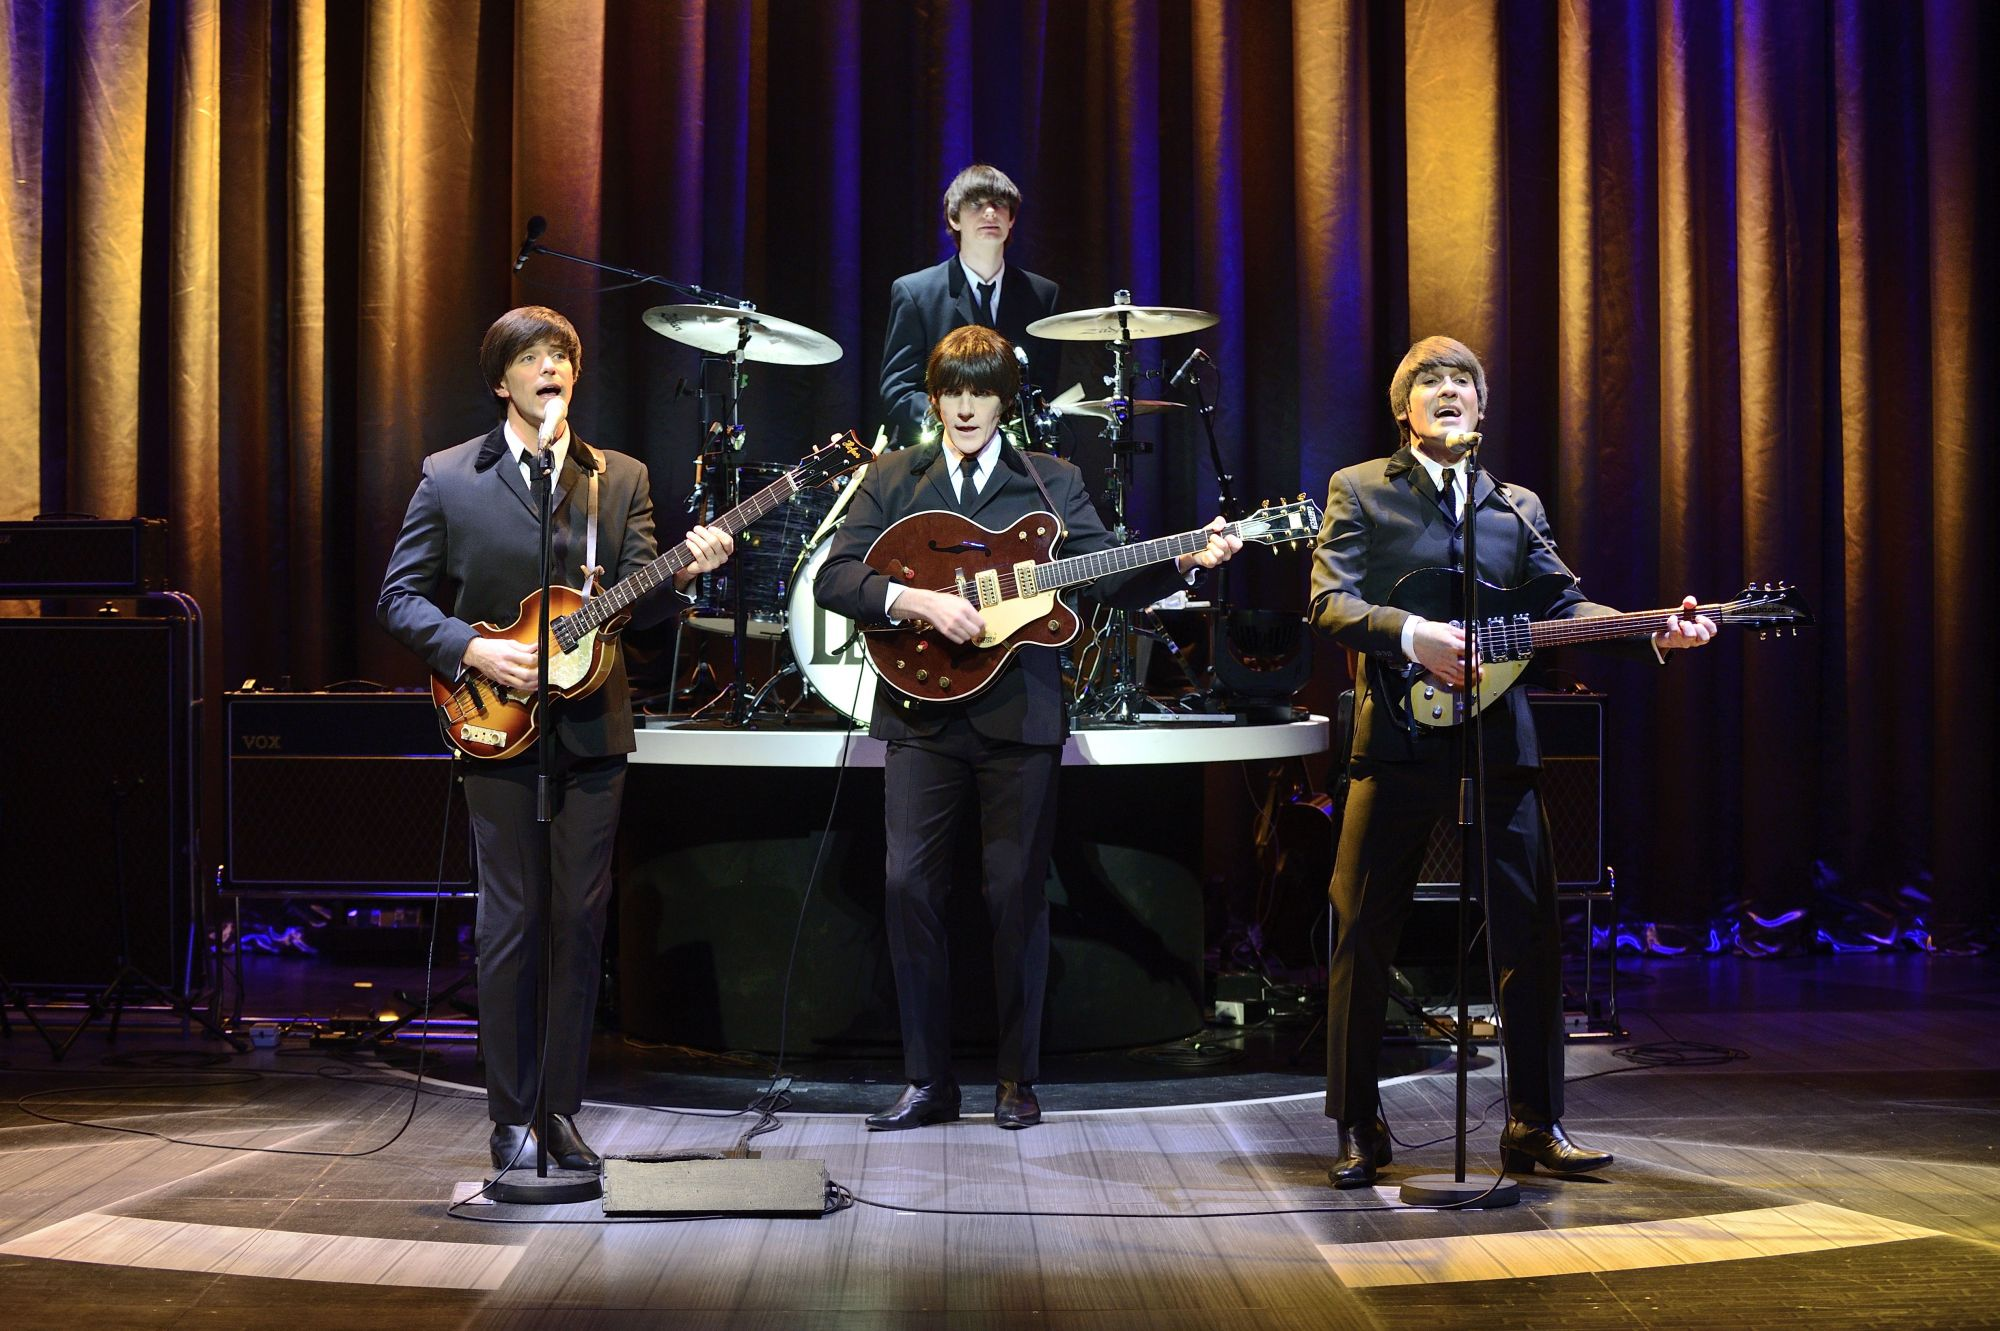 Celebrate The British Way With The Estate Makati And The Beatles